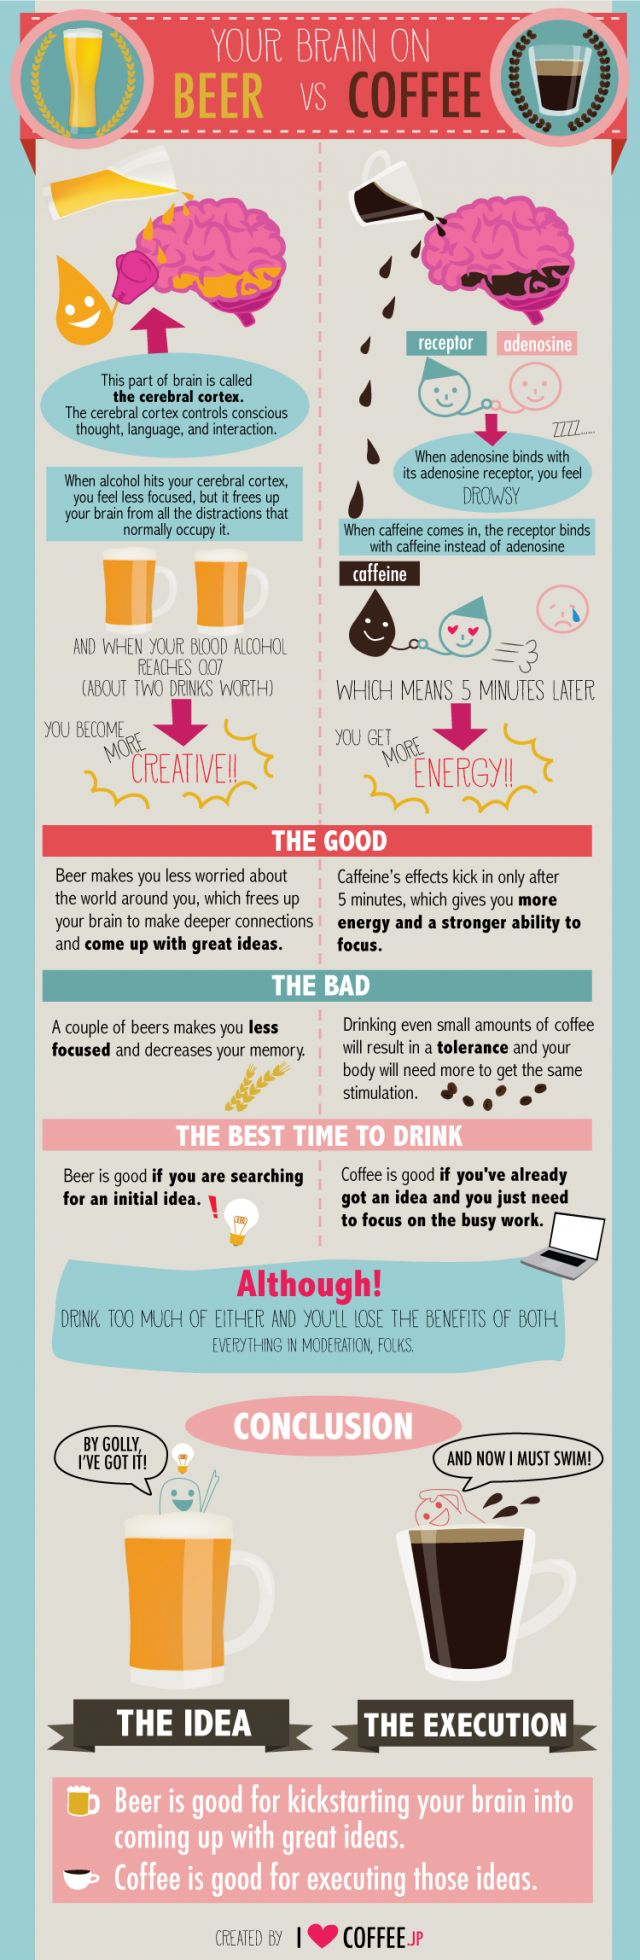 Your Brain On Beer Vs Coffee Infographic